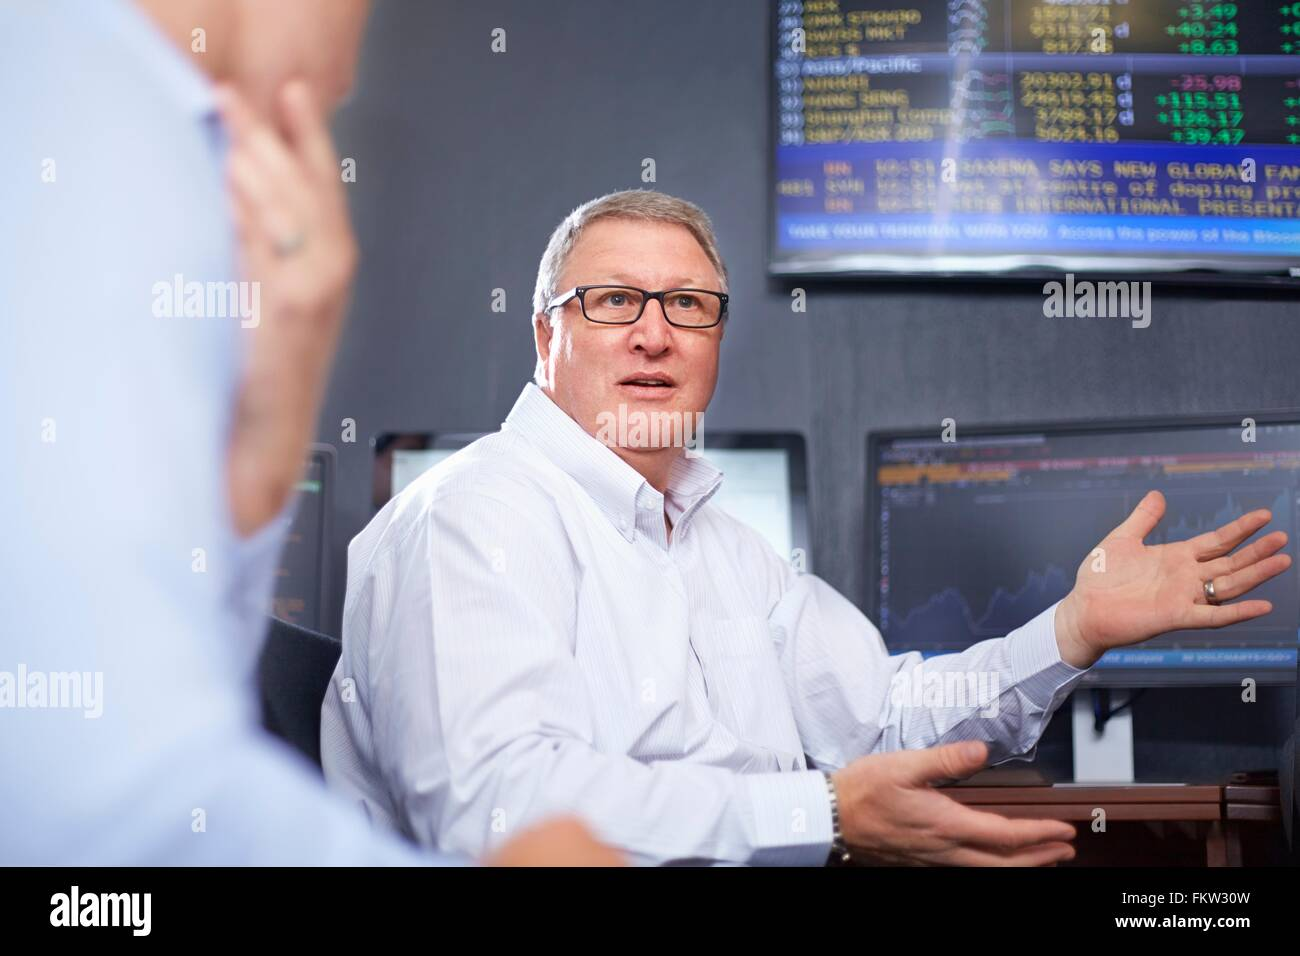 Mature business man in office wearing eye glasses having discussion with colleagues, hand gestures - Stock Image